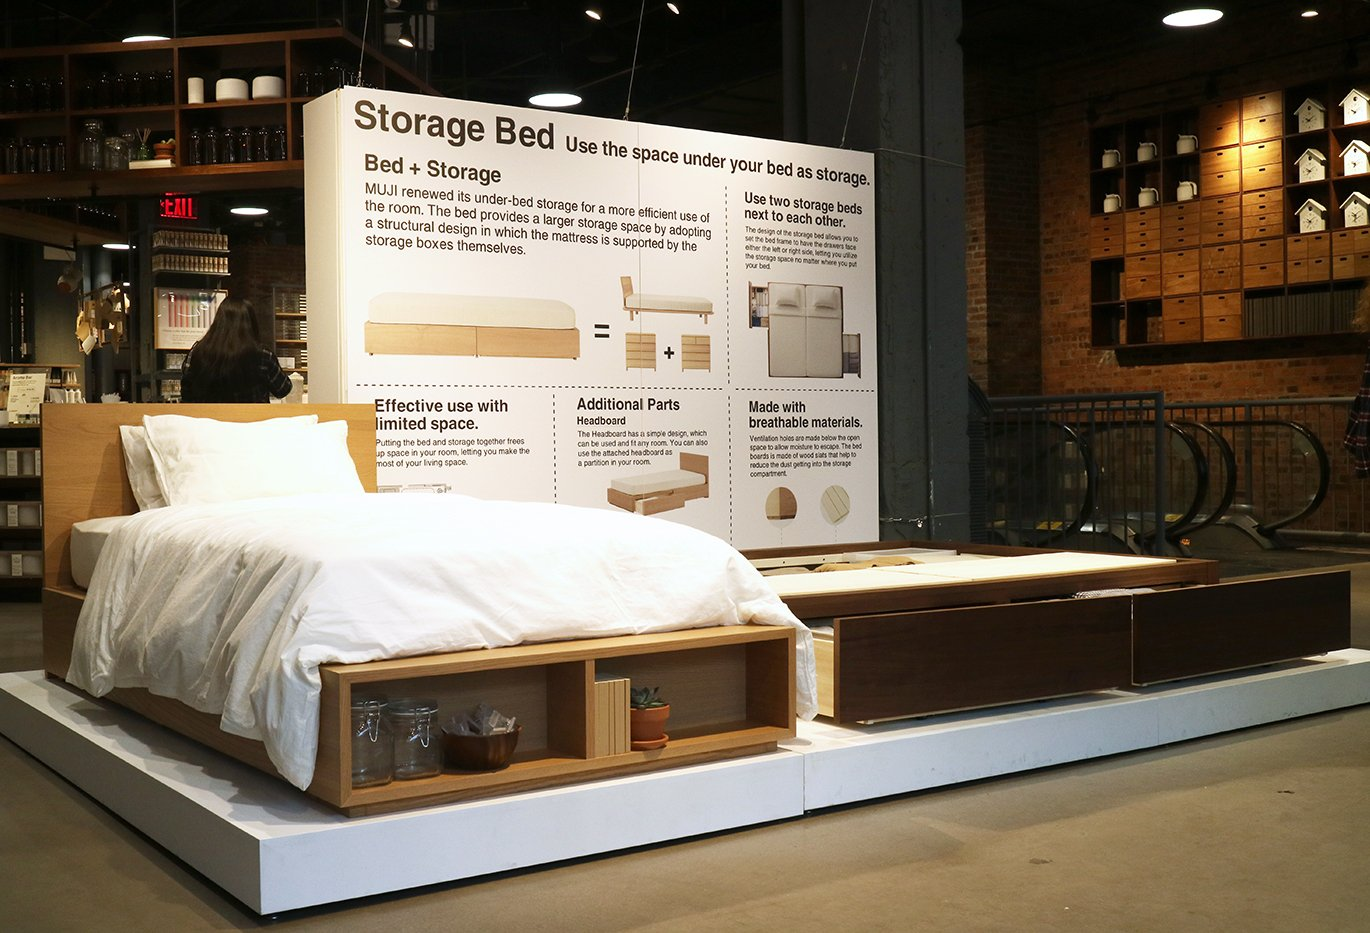 Muji Usa On Twitter The Storage Bed Provides A Larger Tas Polo Design Space By Adopting Structural In Which Mattress Is Supported